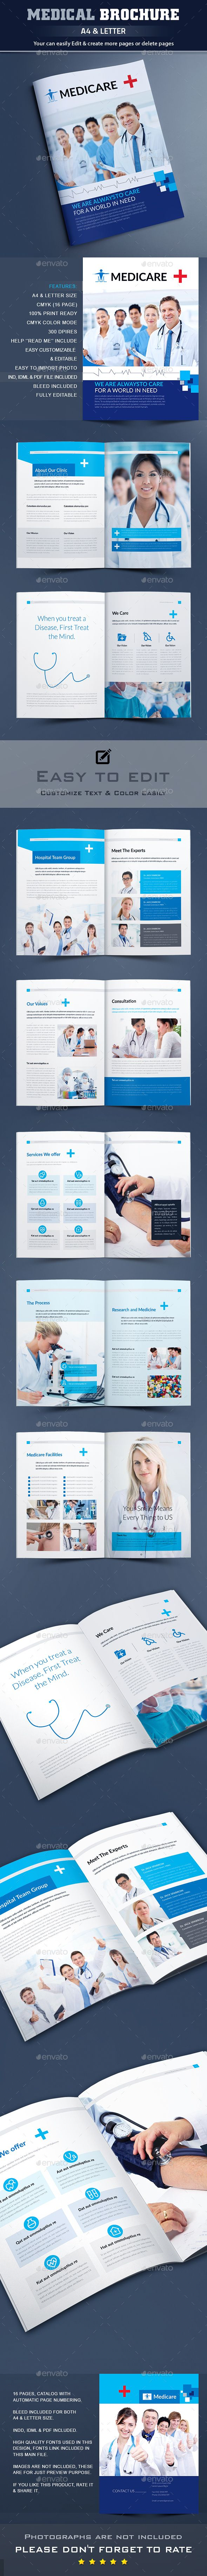 The Best Images About Folder On Pinterest Respiratory Therapy - Brochure design templates indesign